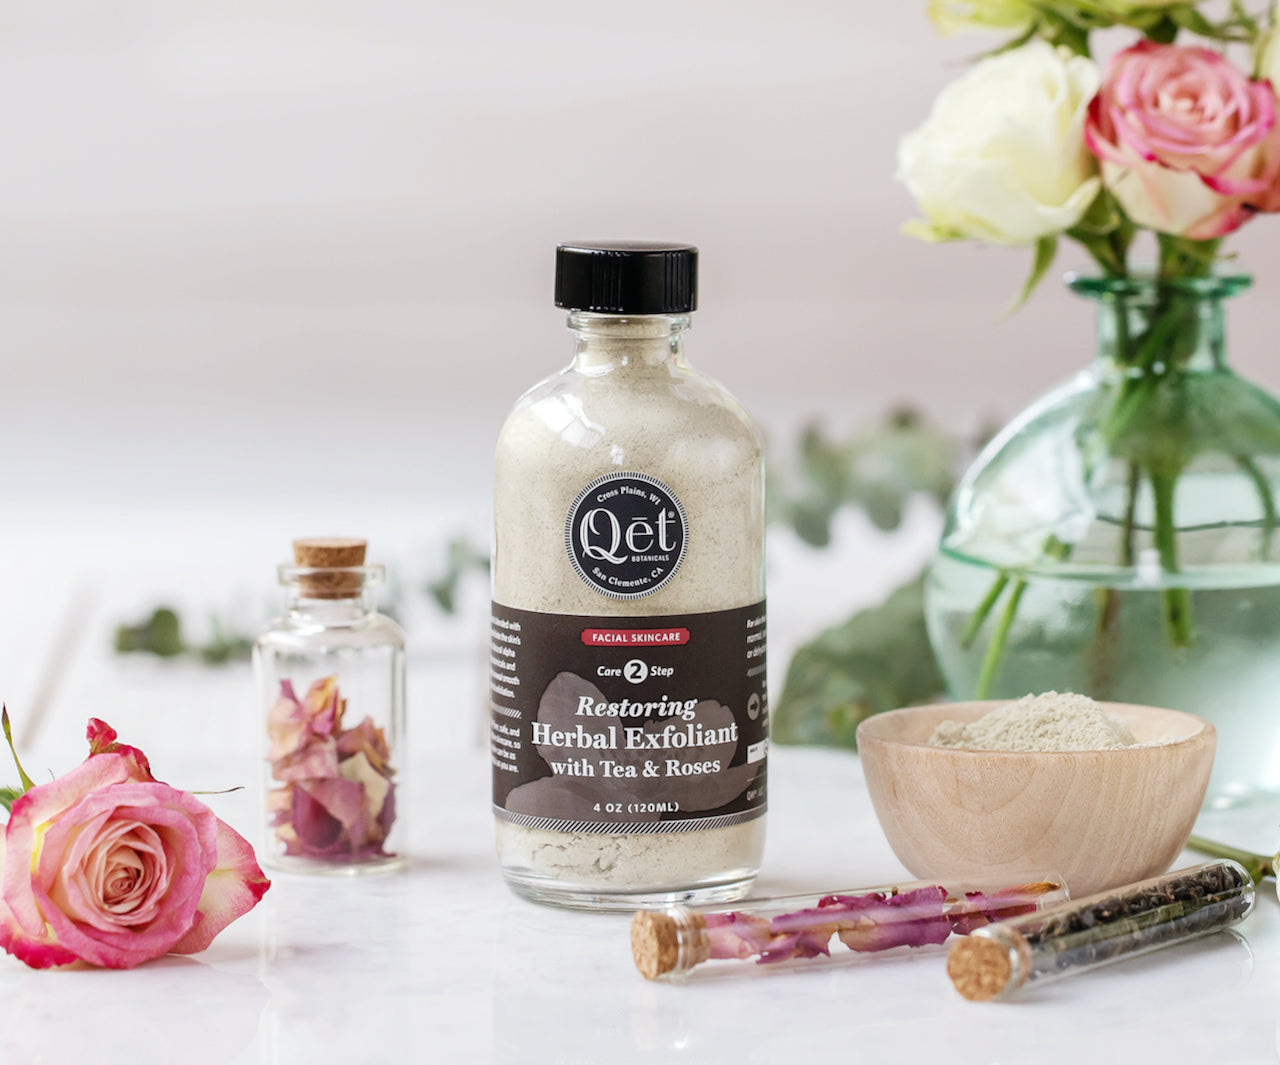 Qet-Botanicals-Restoring-Herbal-Exfoliant-with-Tea-and-Rose